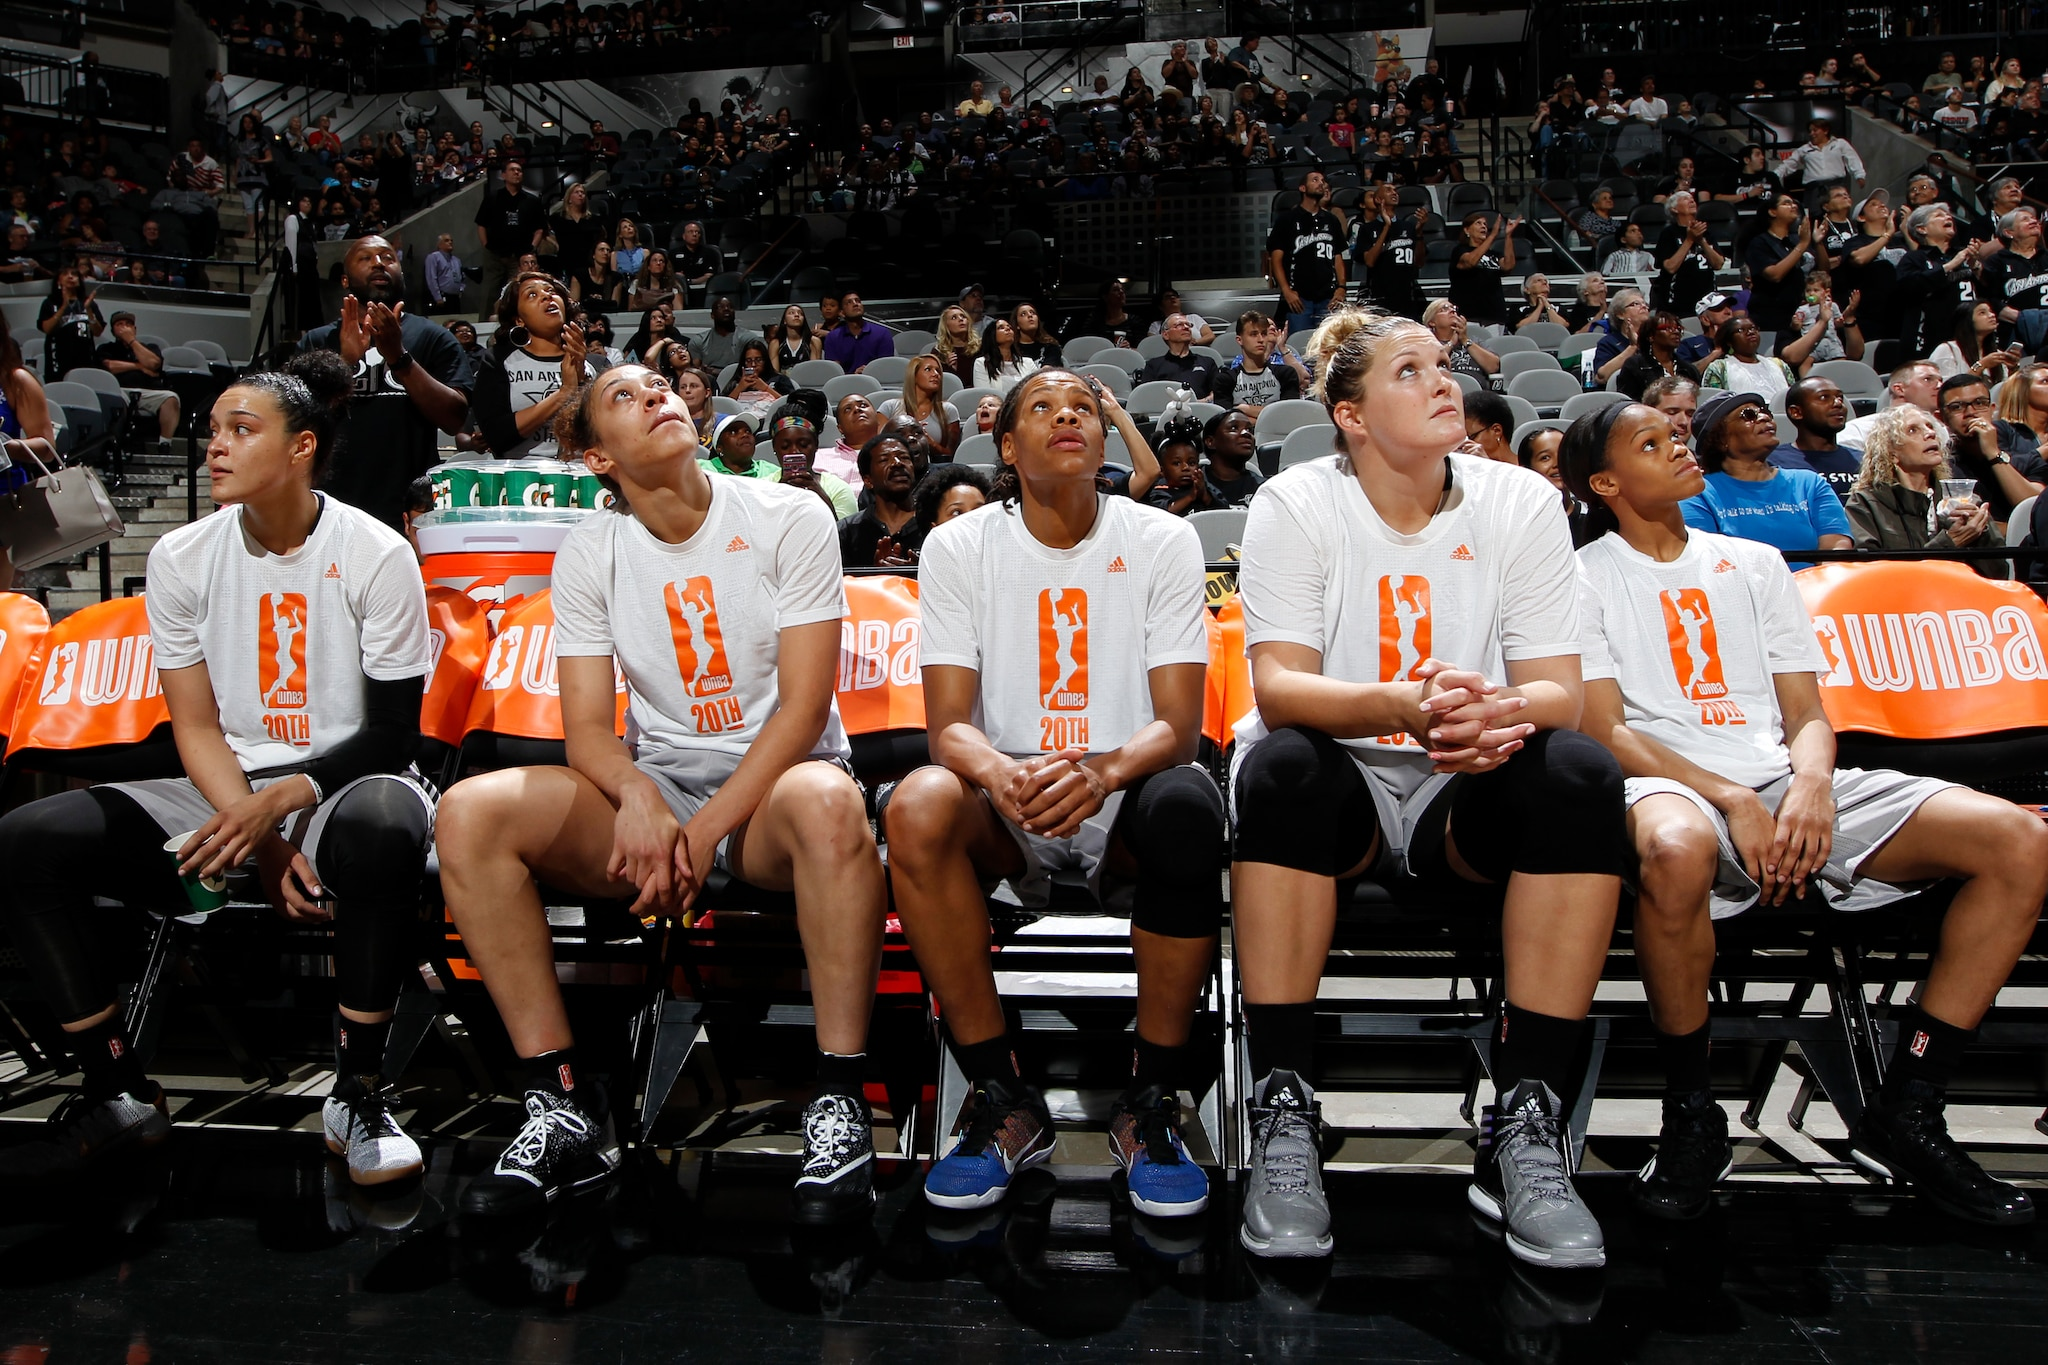 SAN ANTONIO, TX - MAY 14: The San Antonio Stars before the game against the Atlanta Dream on May 14, 2016 at AT&T Center in San Antonio, Texas. NOTE TO USER: User expressly acknowledges and agrees that, by downloading and or using this Photograph, user is consenting to the terms and conditions of the Getty Images License Agreement. Mandatory Copyright Notice: Copyright 2016 NBAE (Photo by Chris Covatta/NBAE via Getty Images)